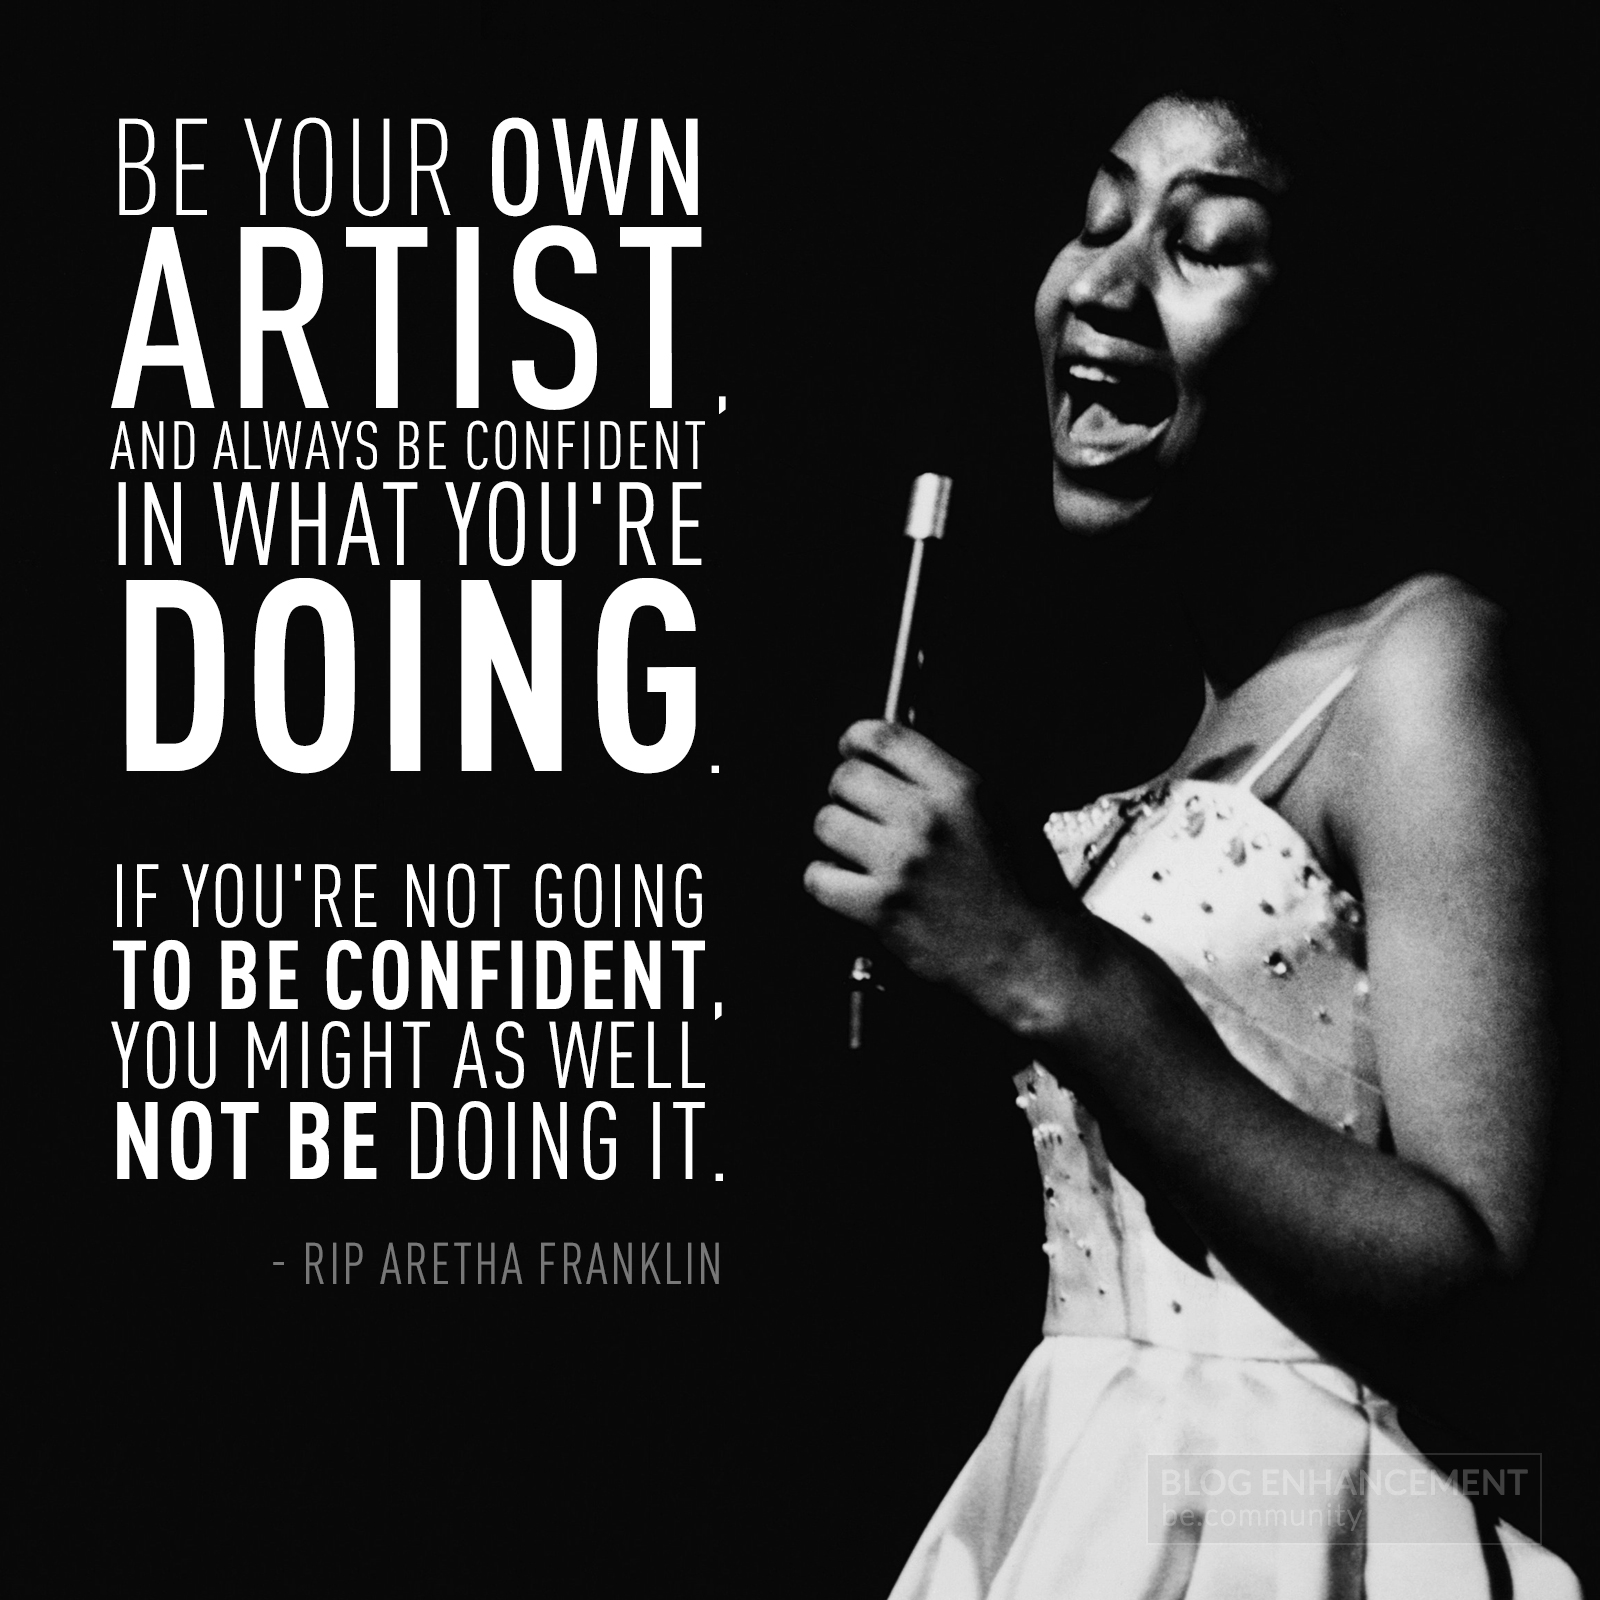 [Image] Aretha Franklin made an amazing point, it's silly for ourselves to even consider being artists if we're not confident in our craft. Confidence is the key to success, we cannot be brave without being confident first.